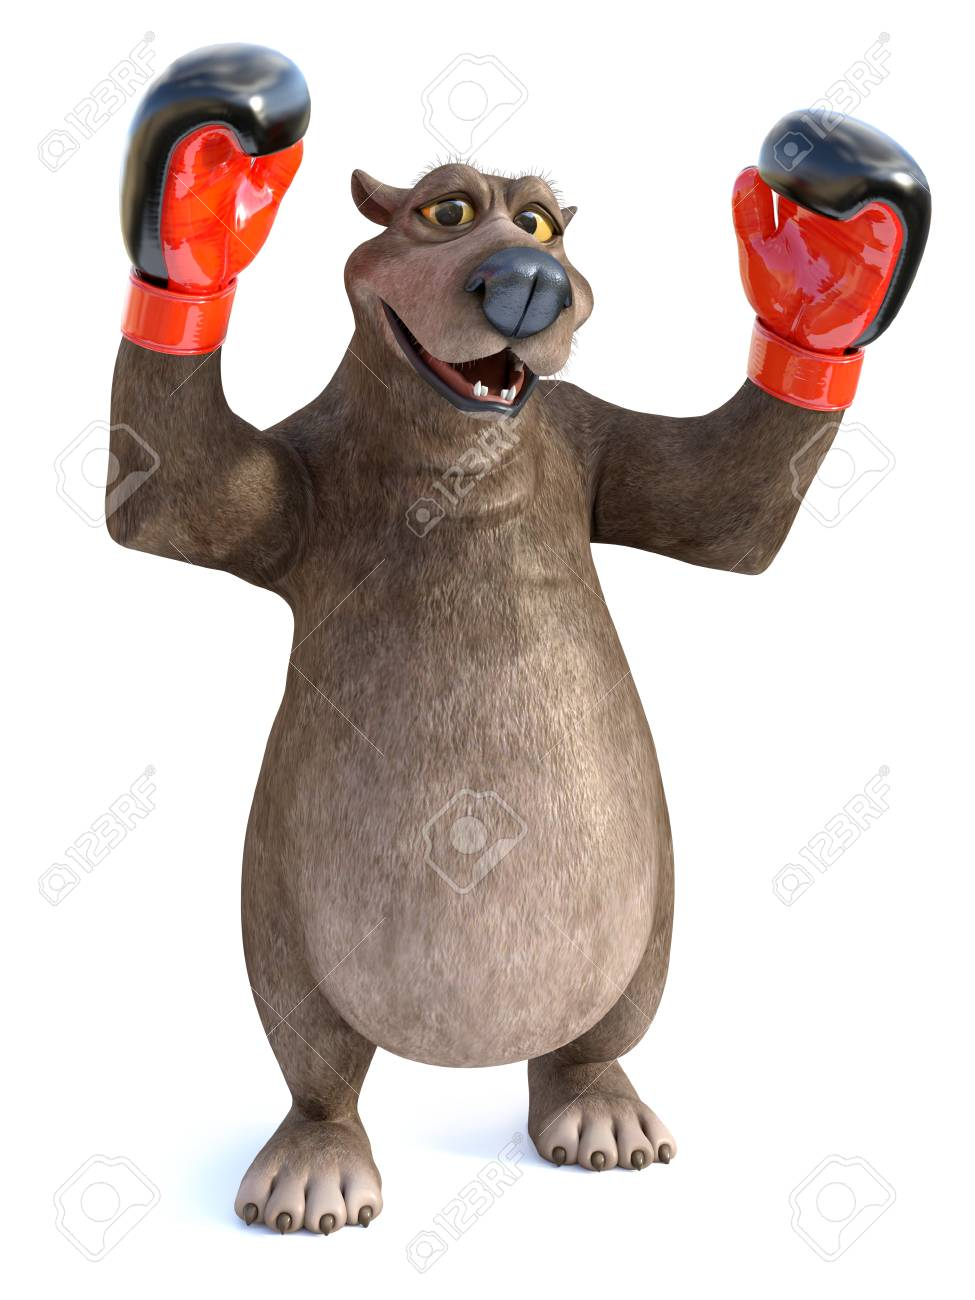 Séries de la Coupe Stanley CH... - Page 10 97550683-3d-rendering-of-a-charming-cartoon-bear-wearing-boxing-gloves-he-looks-like-a-winning-champion-white